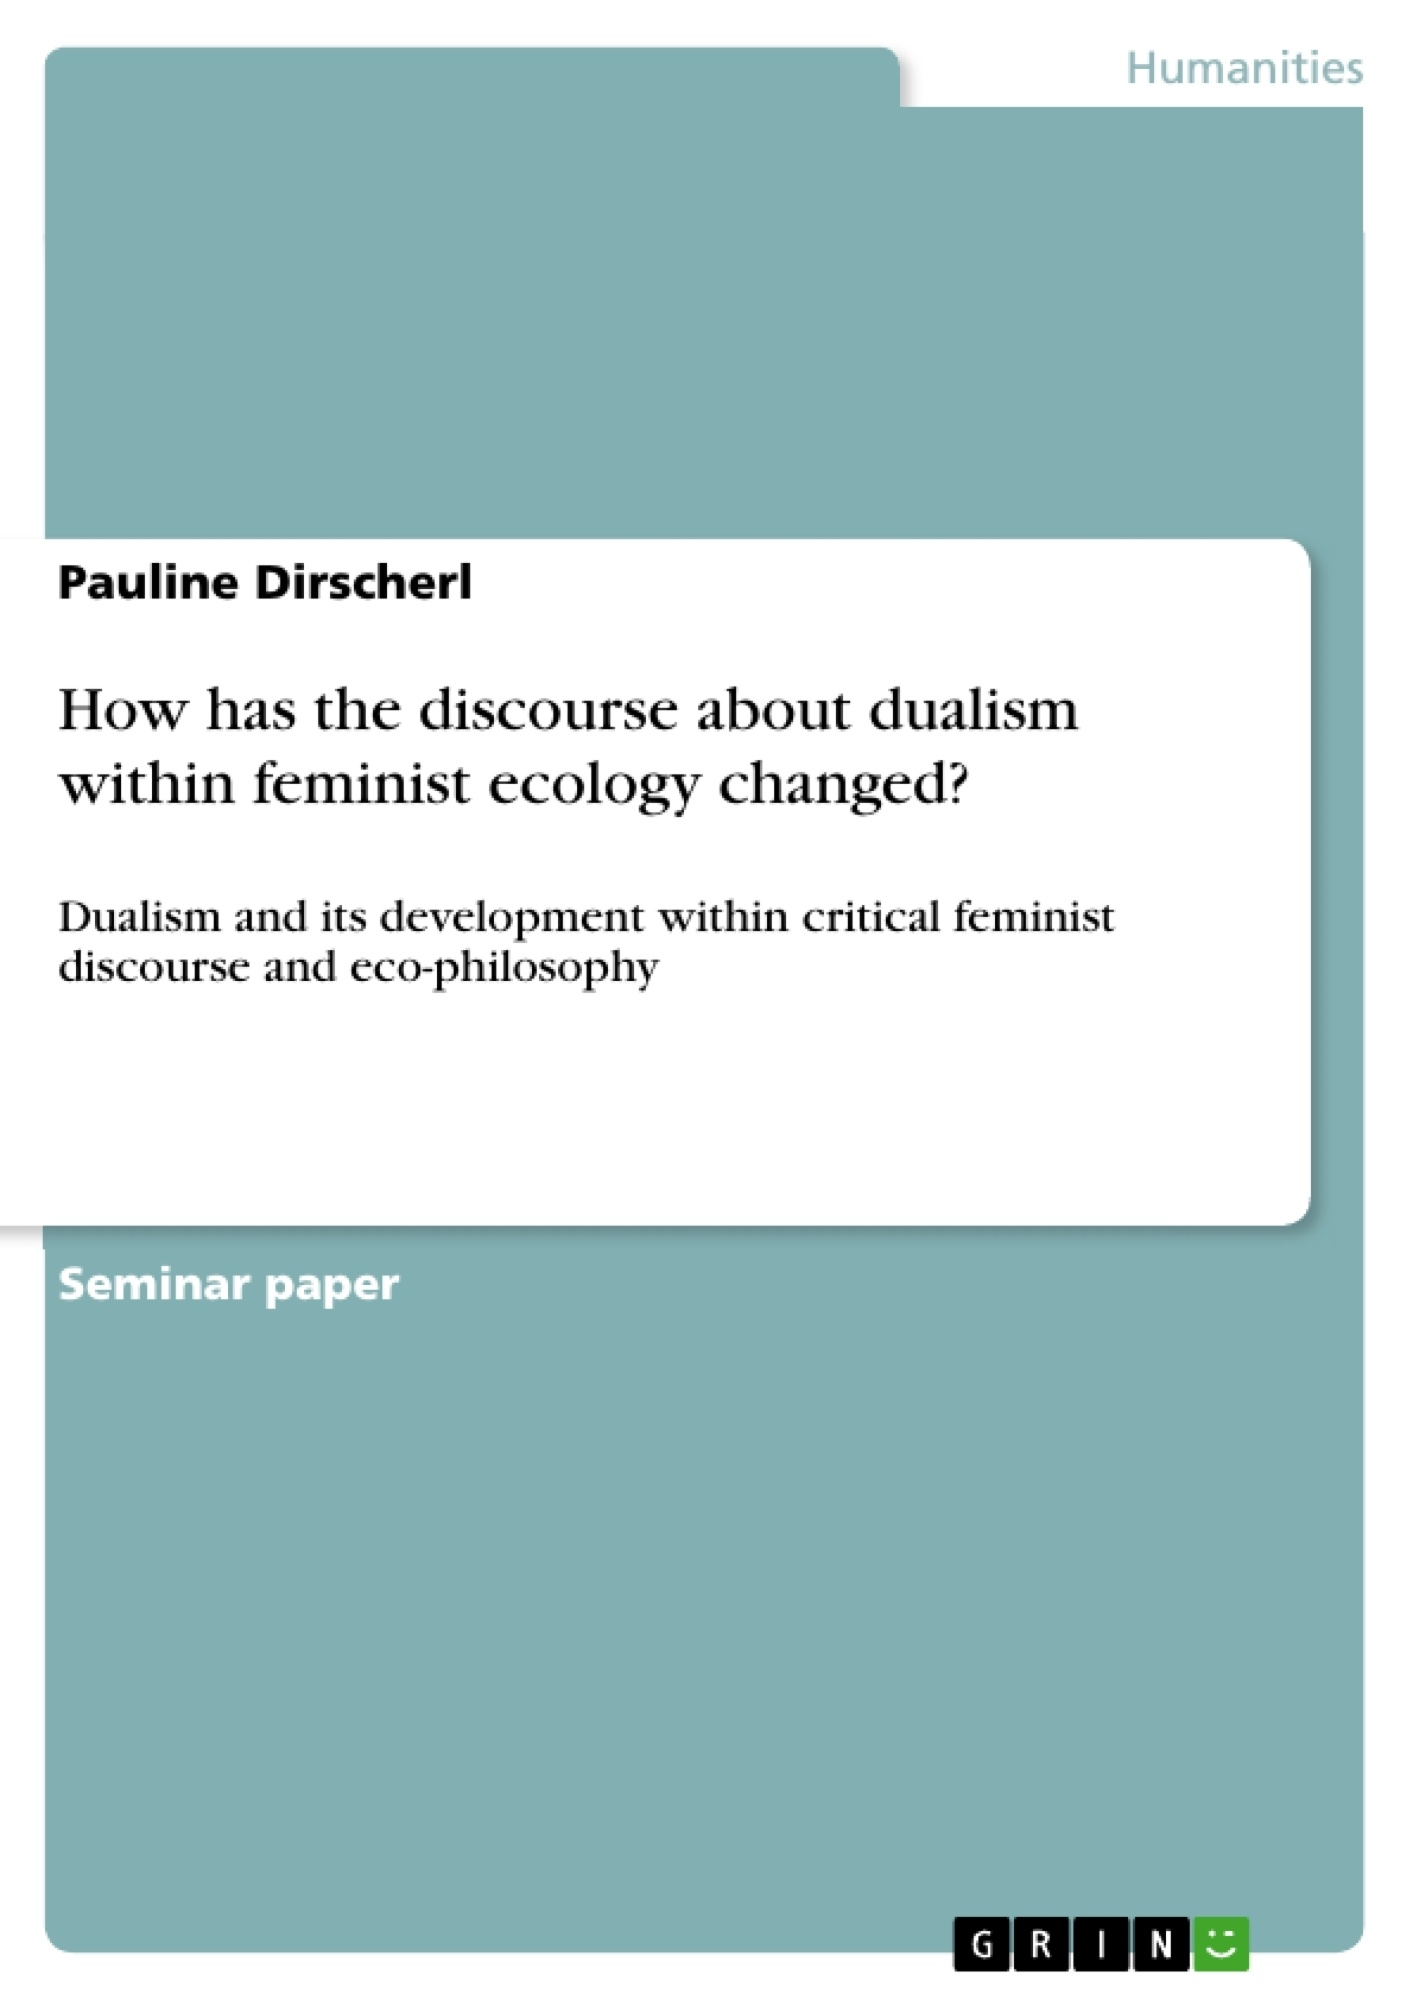 Title: How has the discourse about dualism within feminist ecology changed?